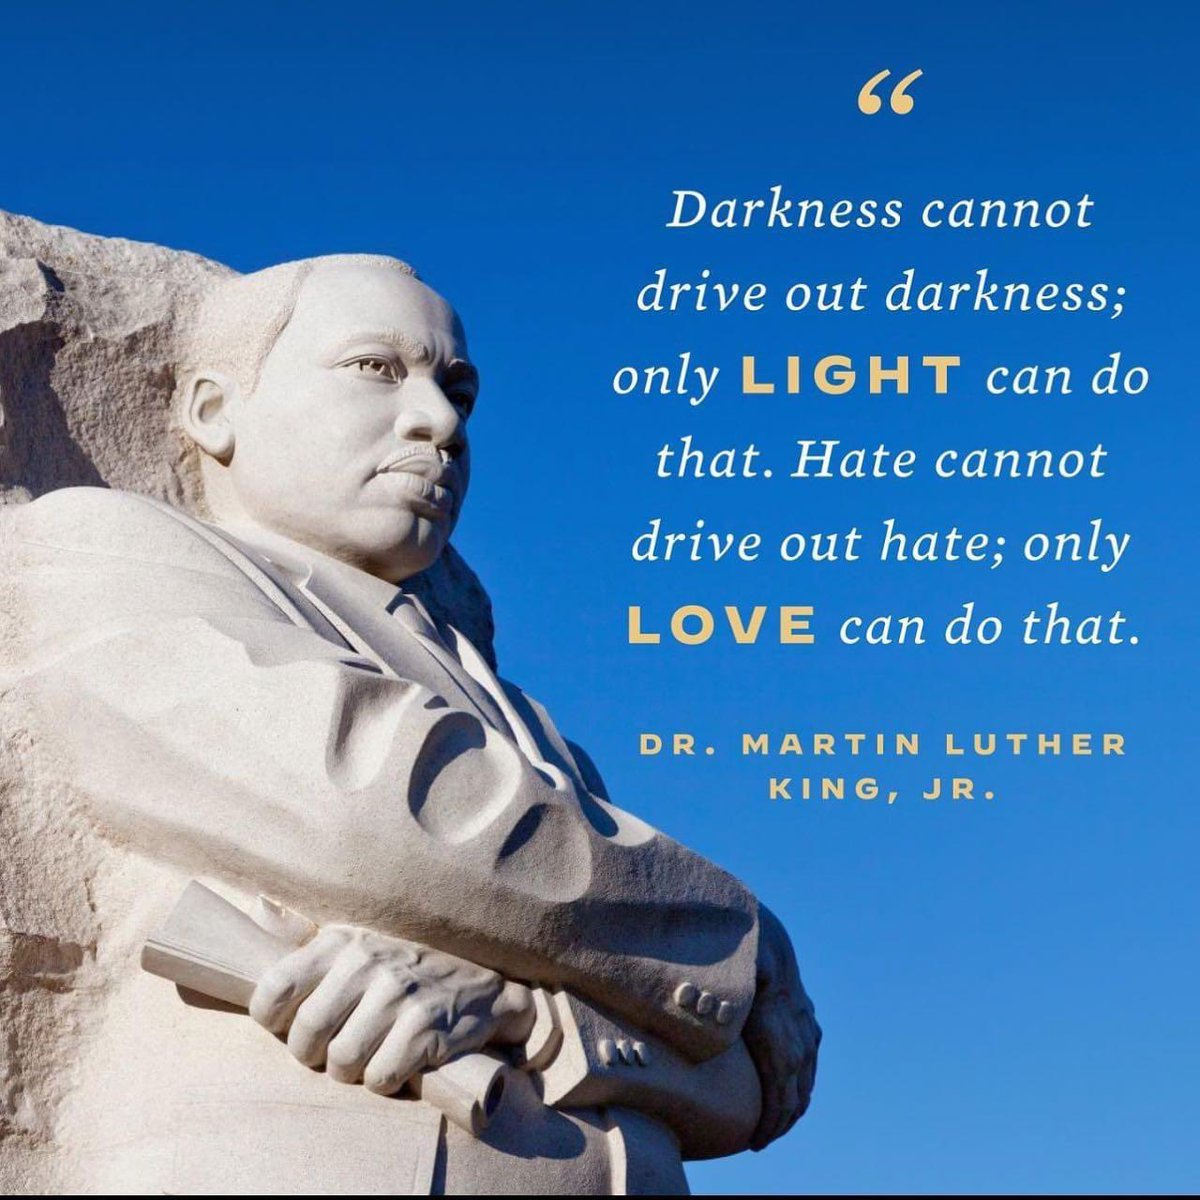 Today, we Honor the life and Legacy of Dr. Martin Luther King, Jr!!  I'm hopeful for a peaceful and bright year ahead for our Country!!  #MLK2021 #MLKDay #loveoverhatred #StrongerTogether #remembranceday 🌹🌺❣️